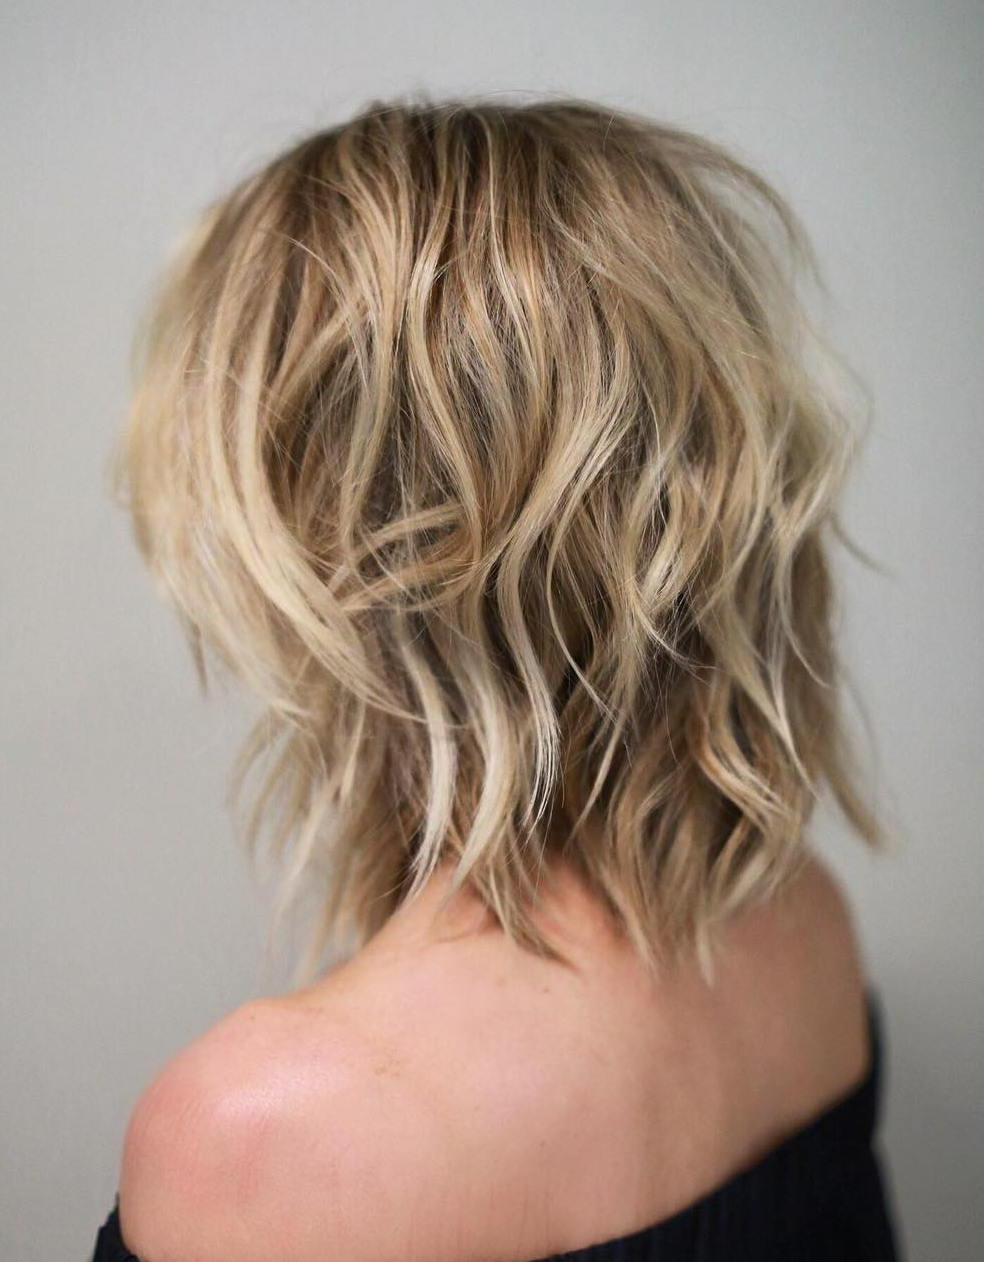 Latest Layered Medium Hairstyles Regarding Medium Hairstyles And Haircuts For Shoulder Length Hair In 2018 — Trhs (Gallery 14 of 20)